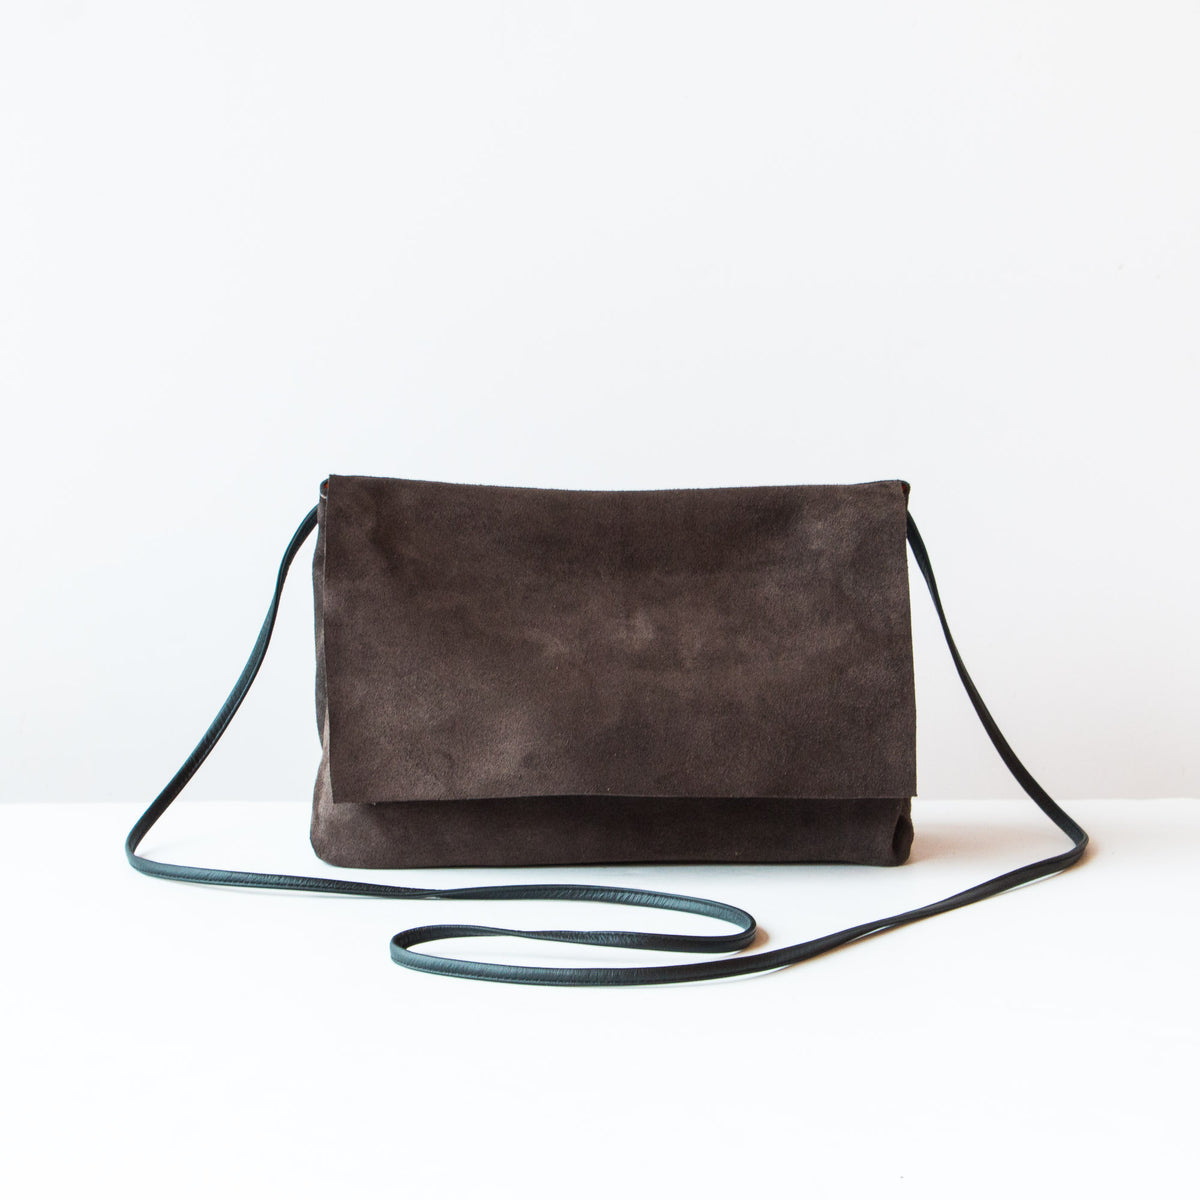 Greystone & Orange - Handmade Flap Purse in Calf Suede & Pork Suede Lining - Sold by Chic & Basta